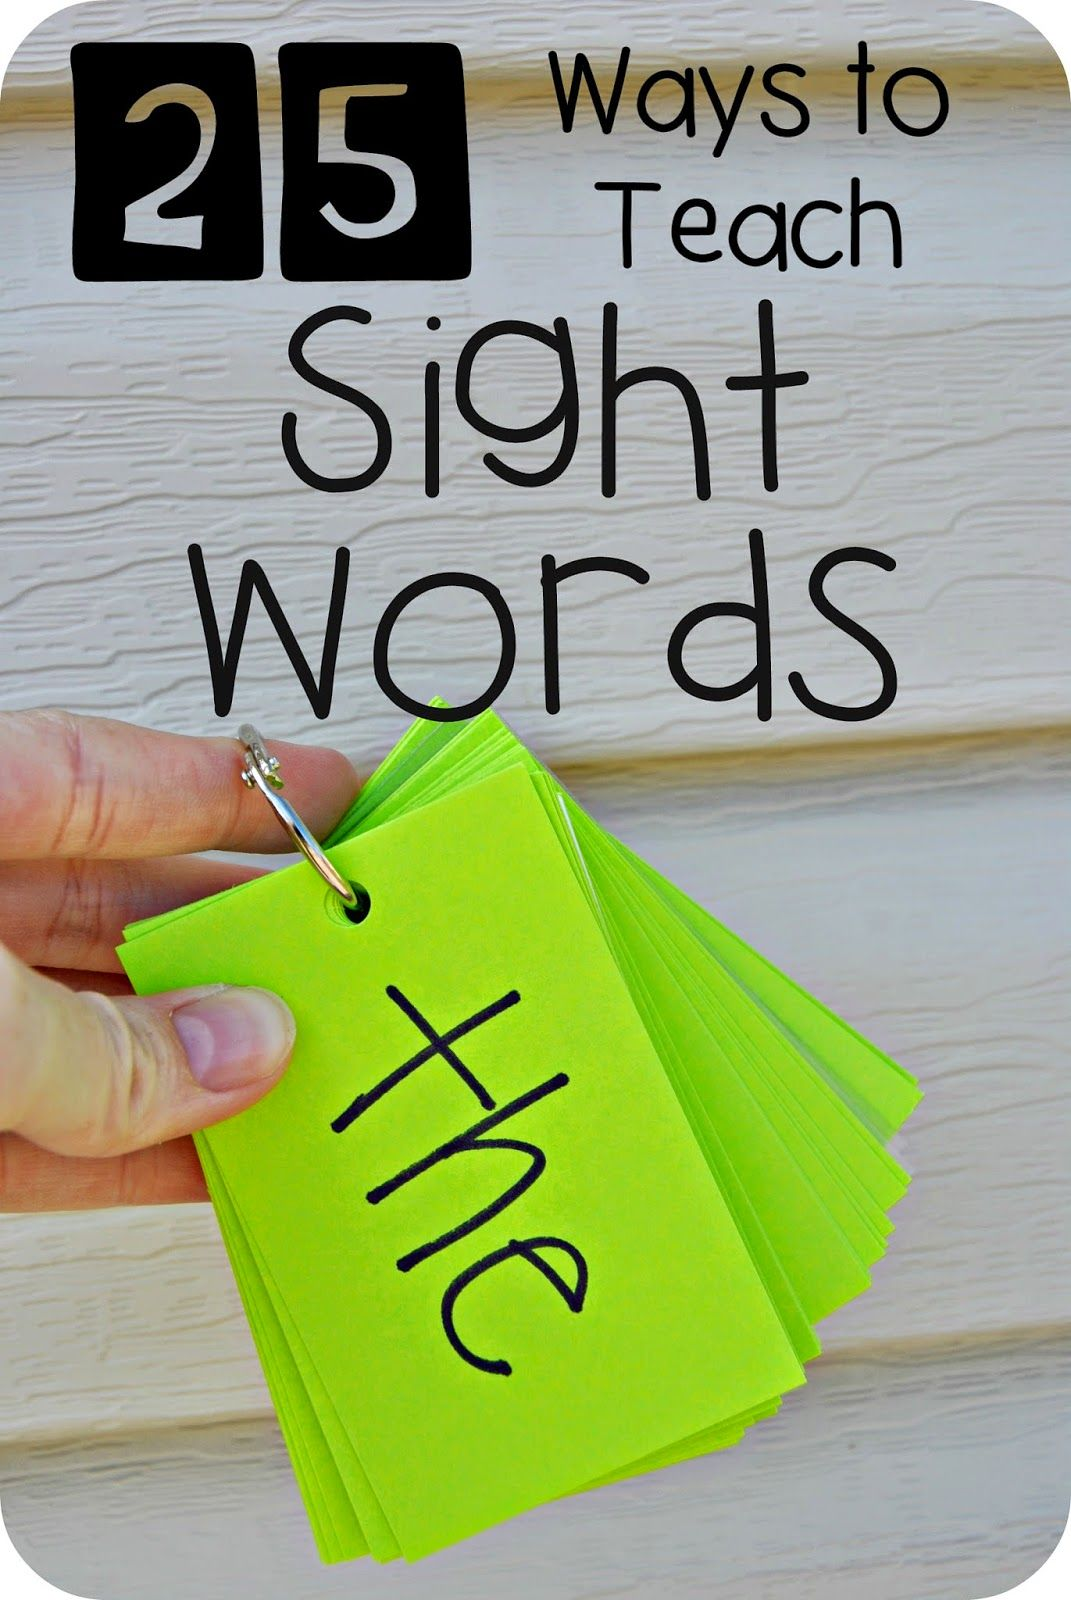 25 Ways to Teach Sight Words! I like 4. 18 and 21 for Chris^2 ...